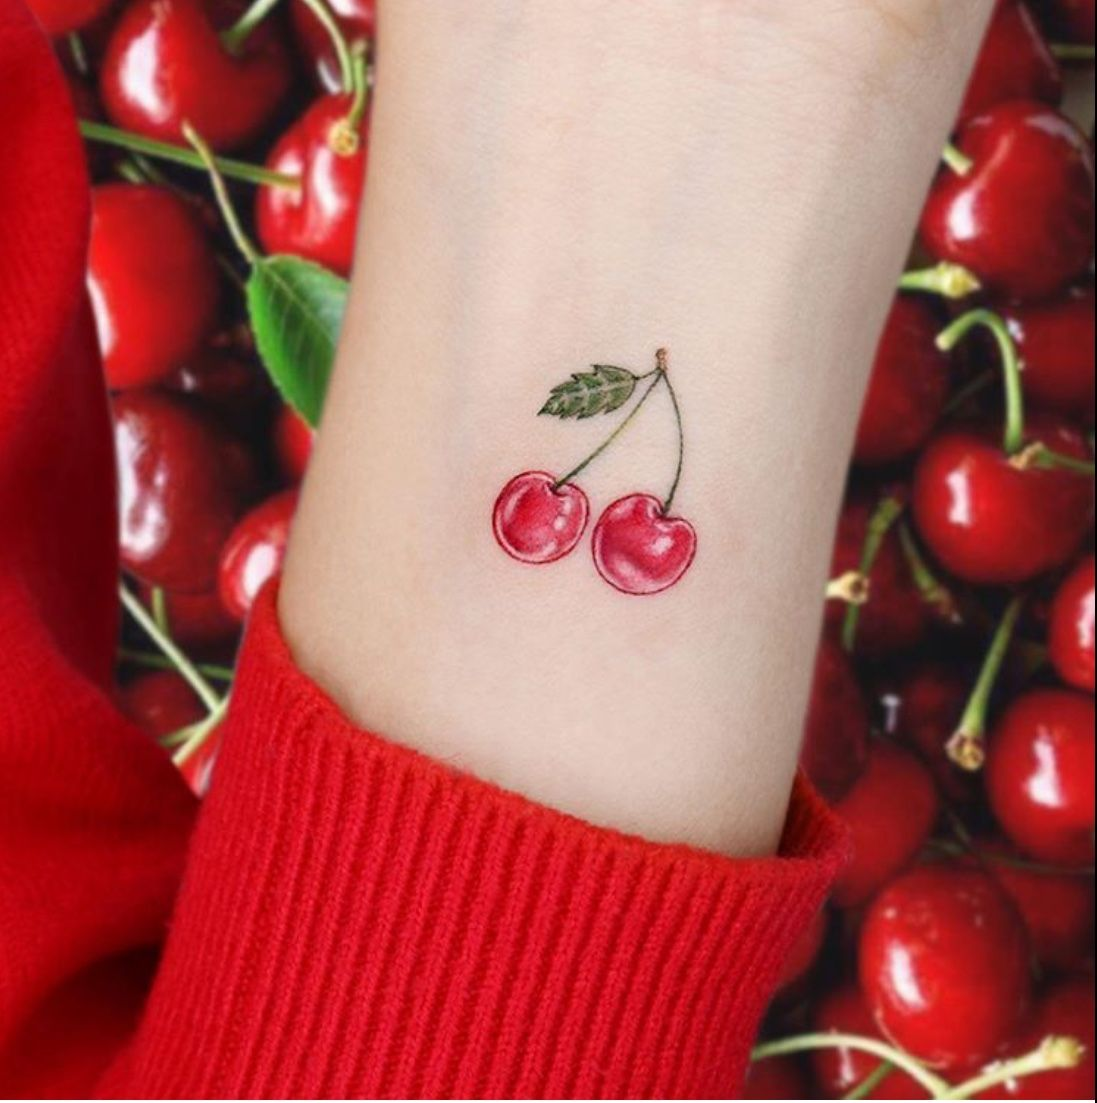 50 Best Fruit Tattoo Designs The Xo Factor In 2020 Fruit Tattoo Cherry Tattoos Tattoos